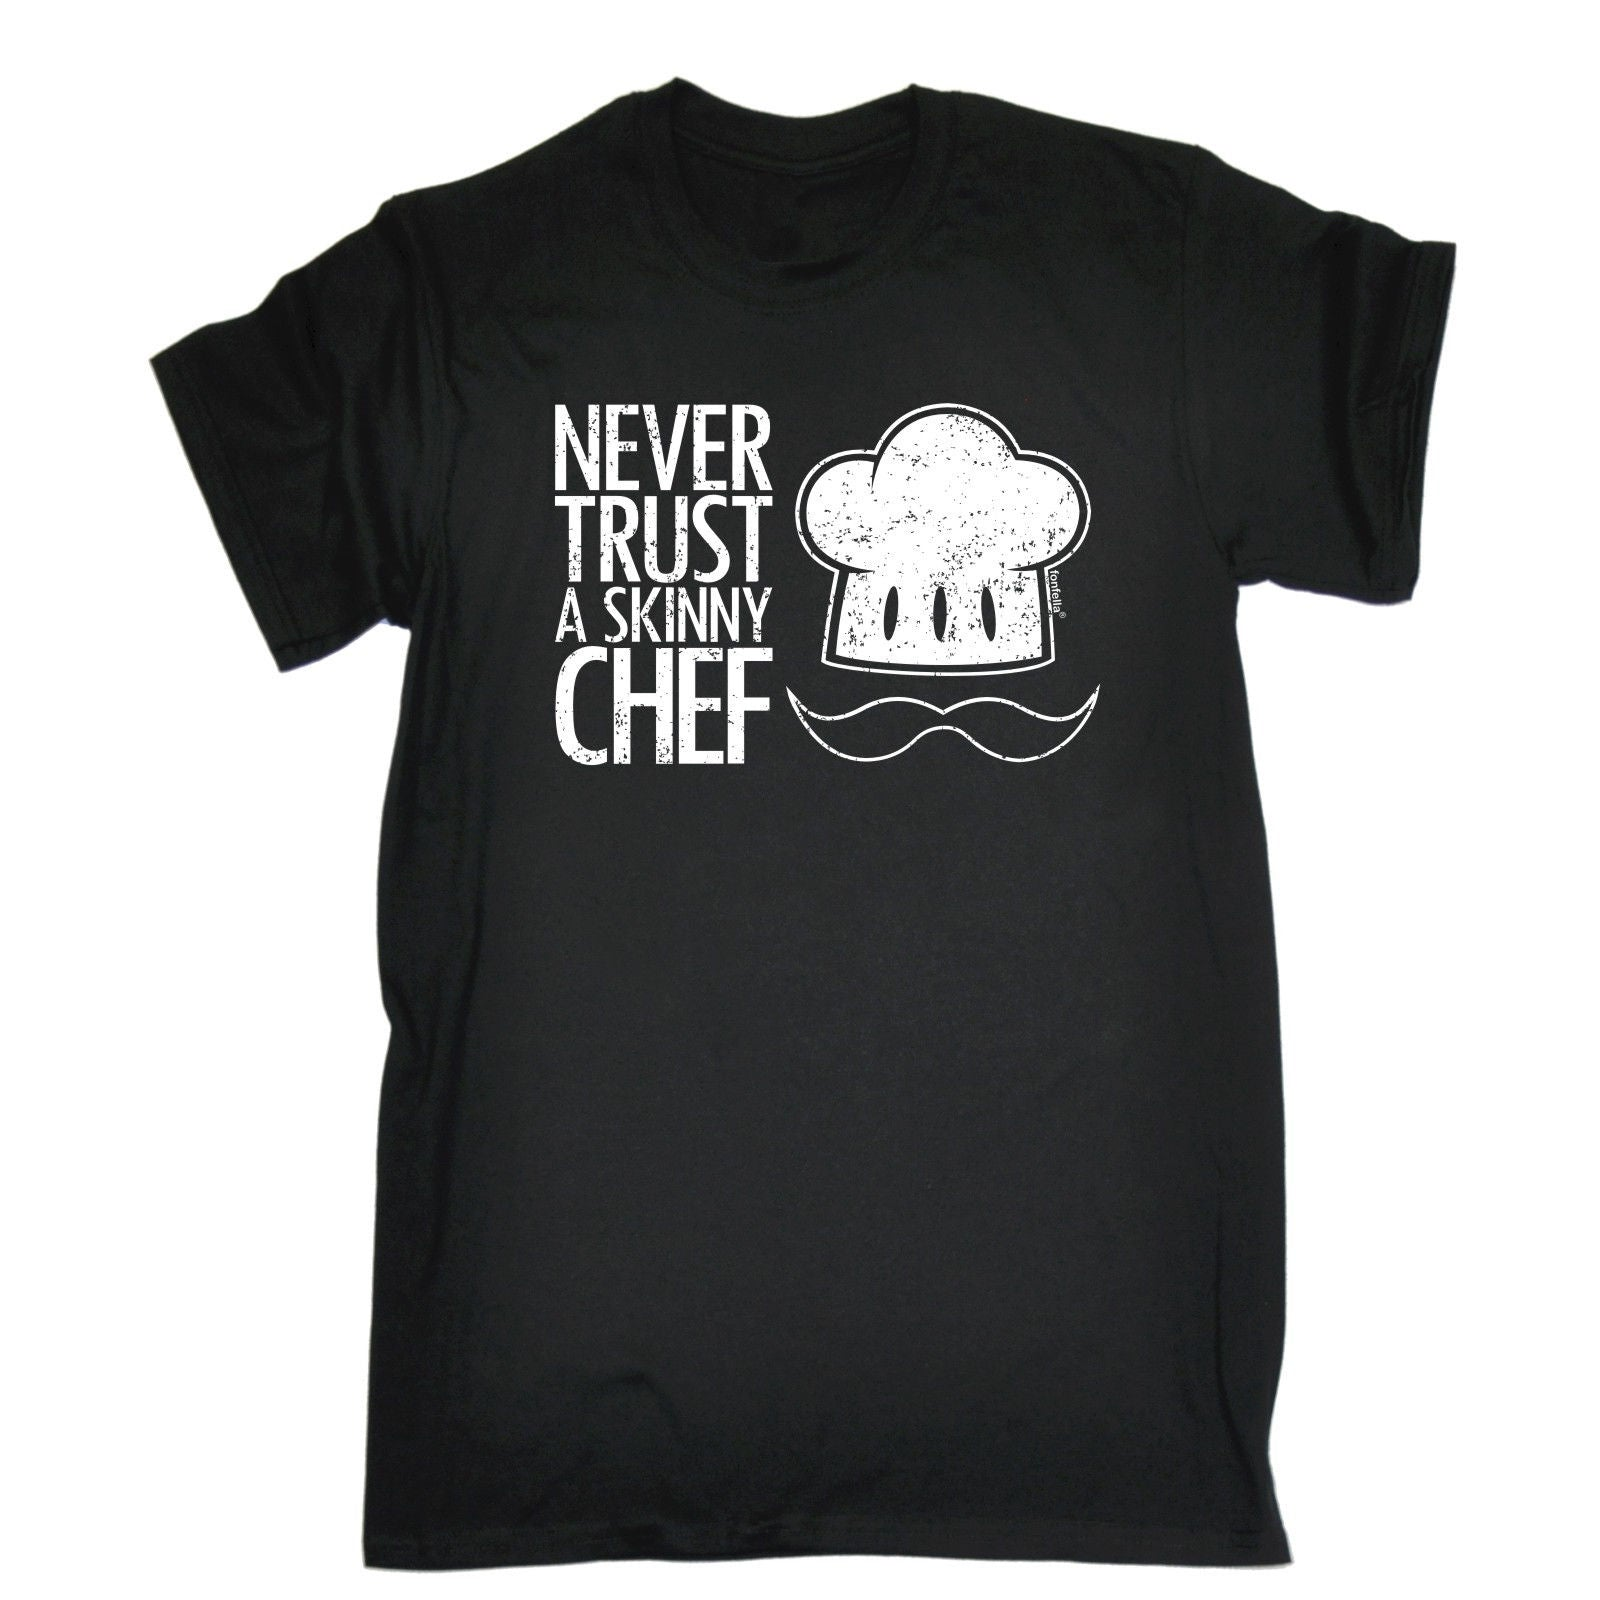 NEVER TRUST A SKINNY CHEF T-SHIRT Cook Cooking Foodie Fun Funny Birthday Gift Fashion Print  T shirt Plus Size Simple